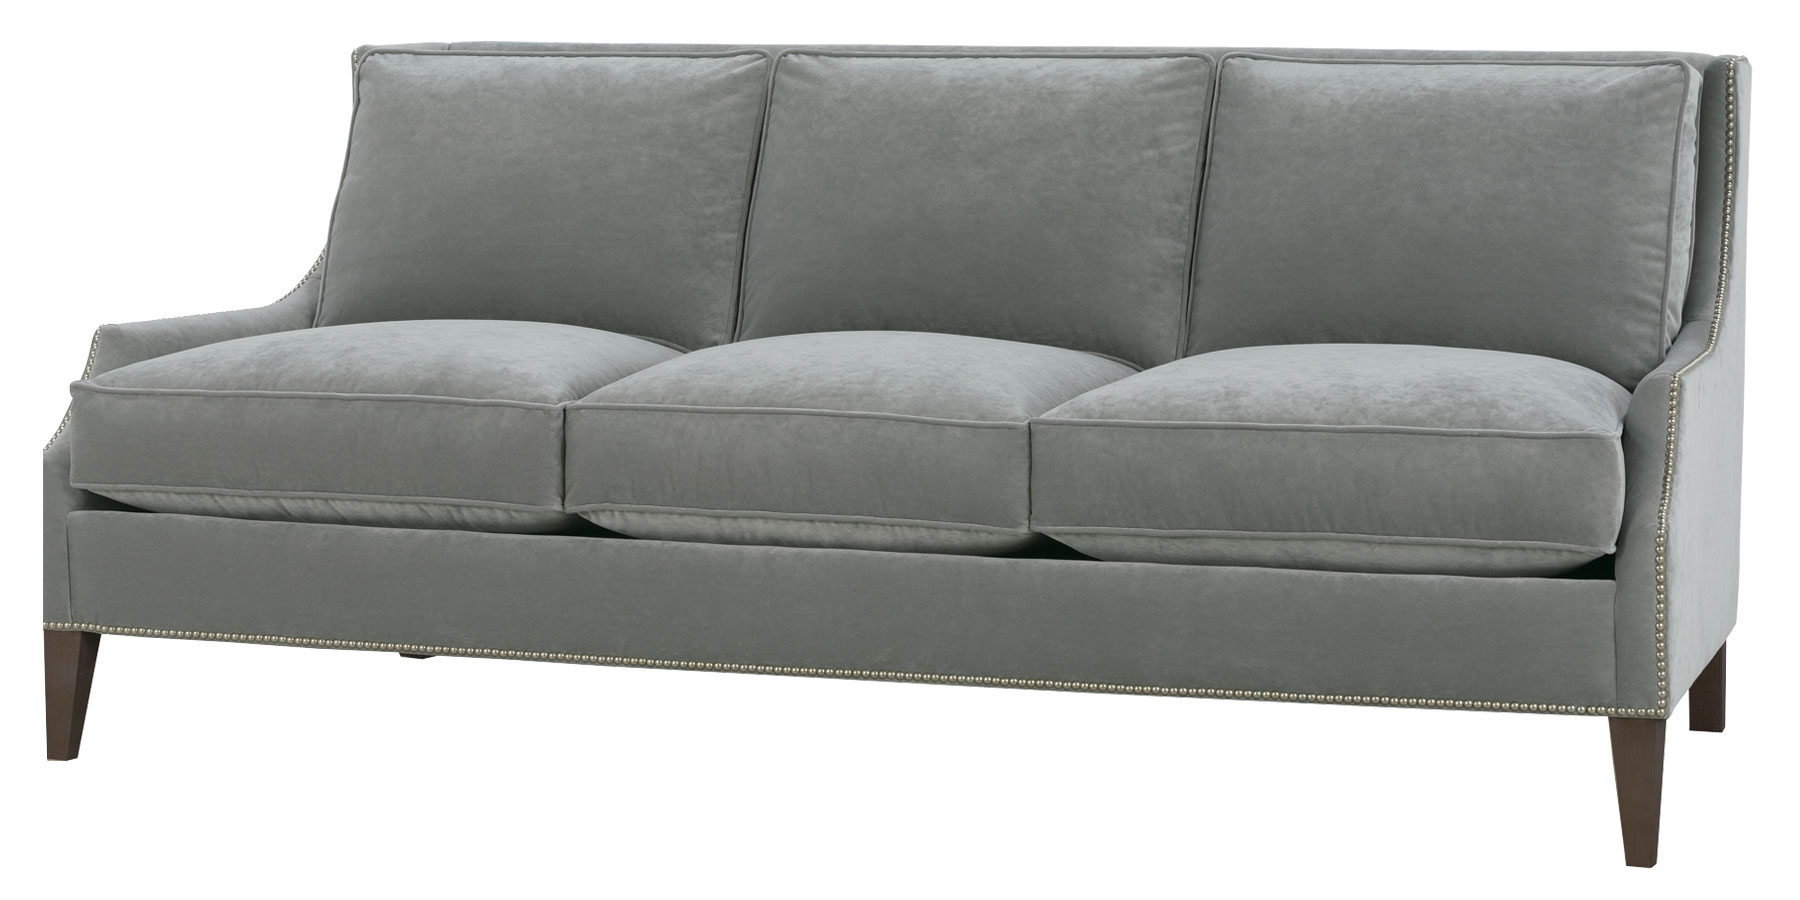 2018 Apartment Size Couch – Home Designs Ideas Online – Tydrakedesign Pertaining To Apartment Sofas (View 9 of 20)